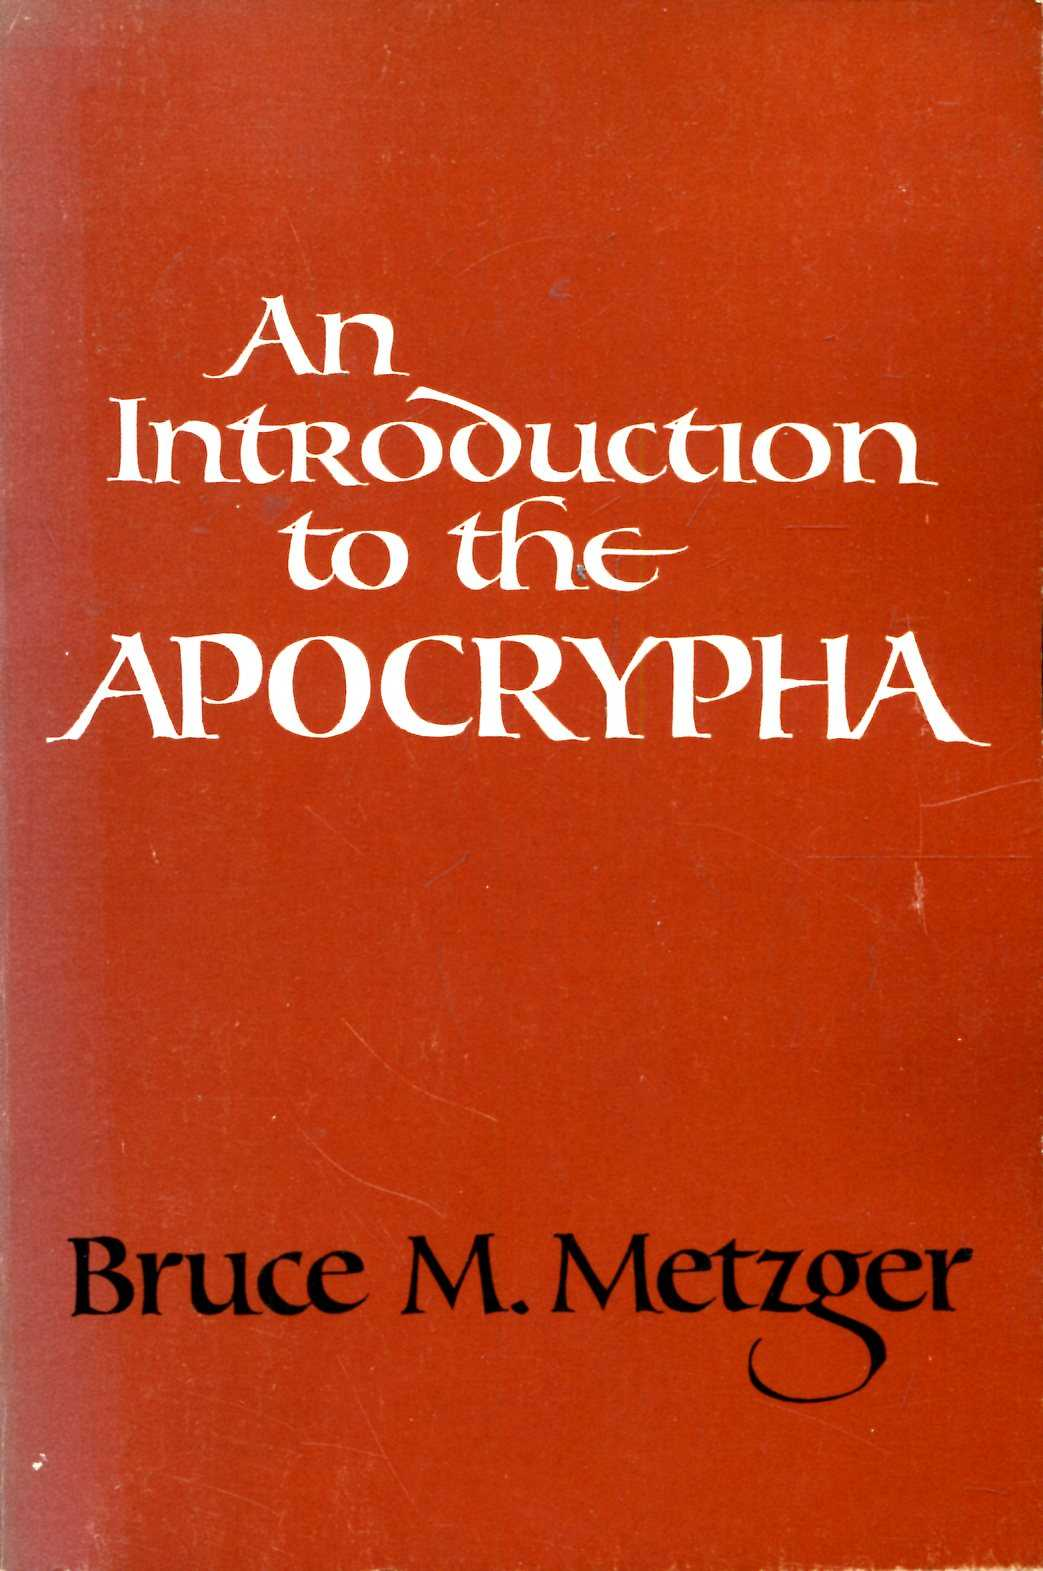 Image for An Introduction to the Apocrypha